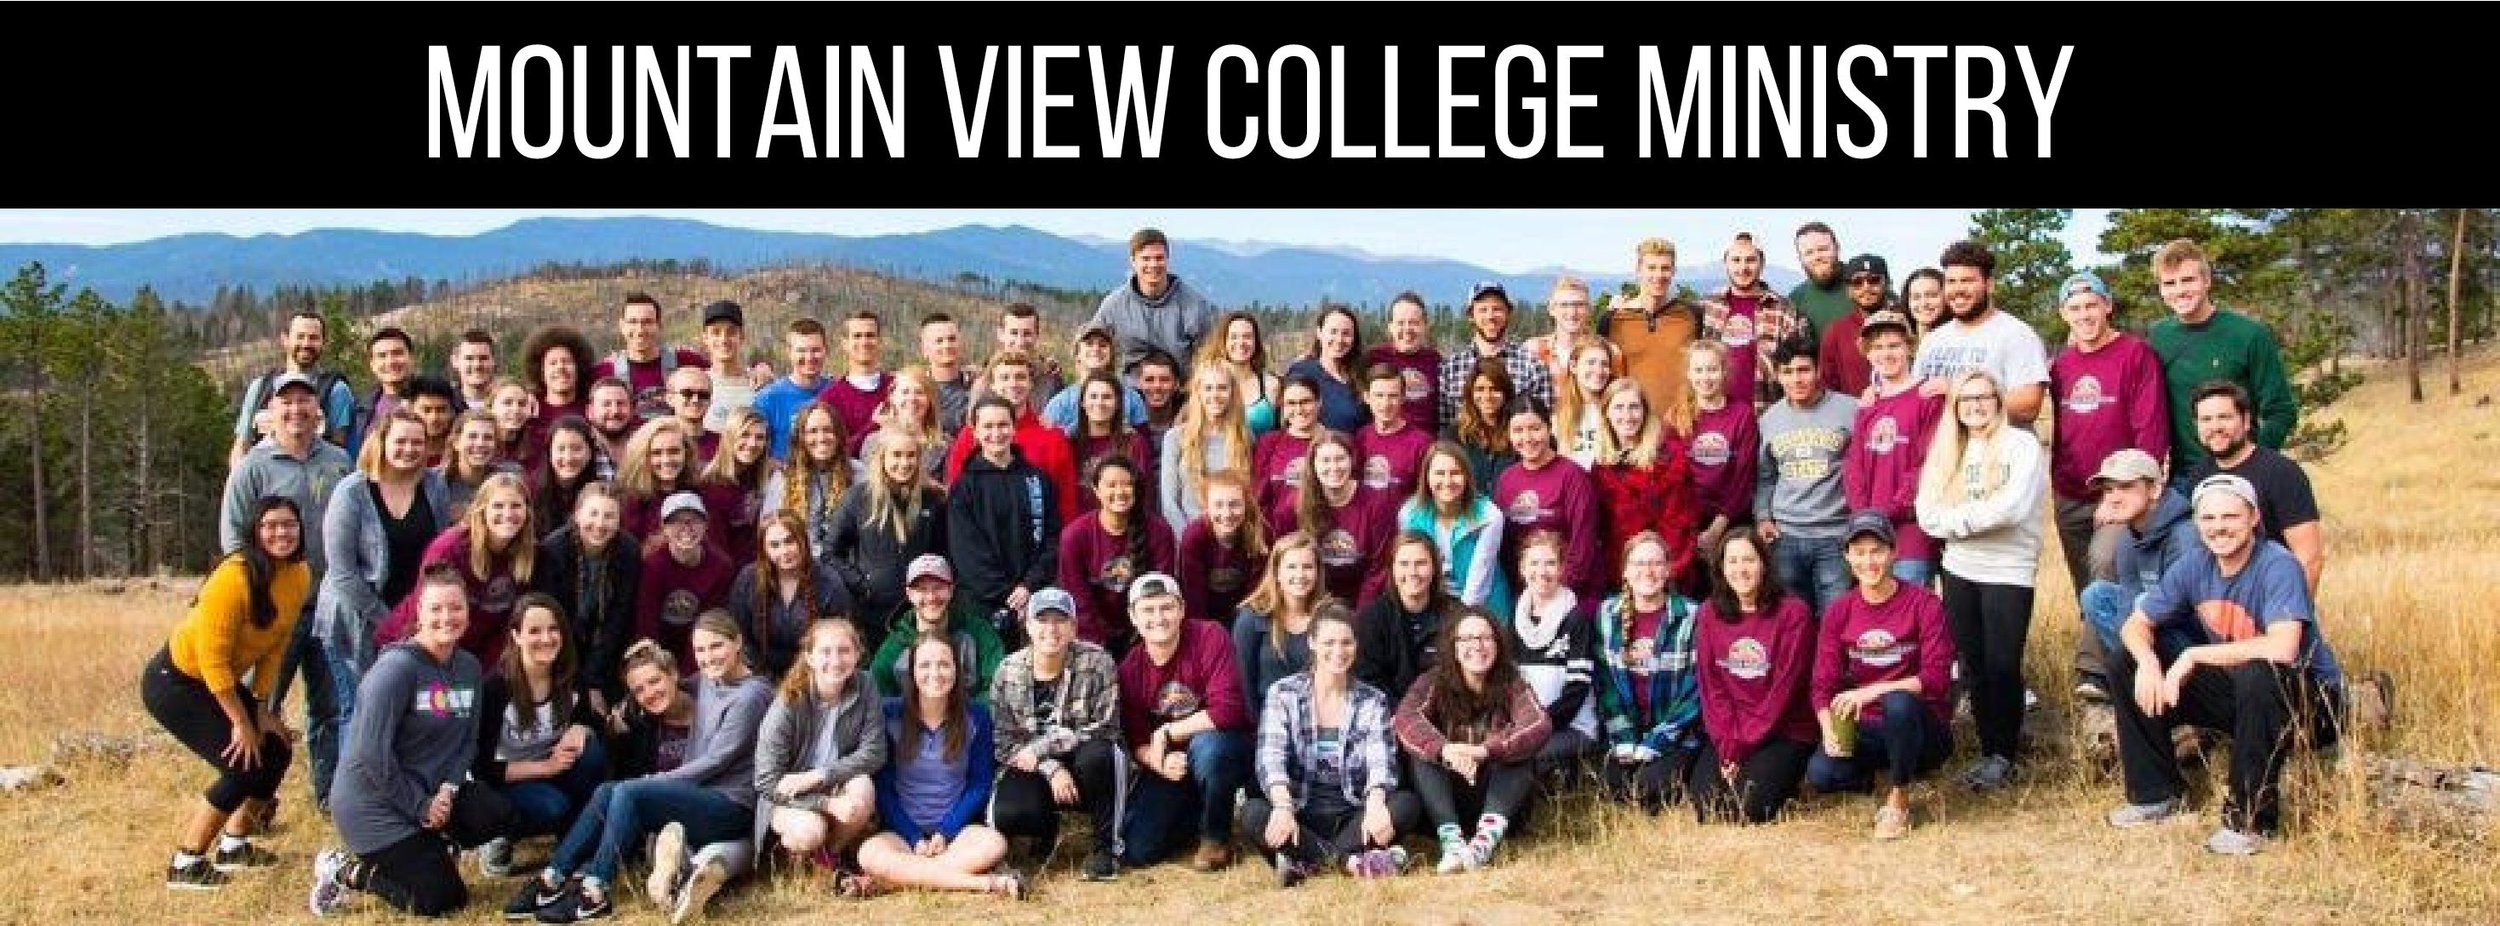 christian college group